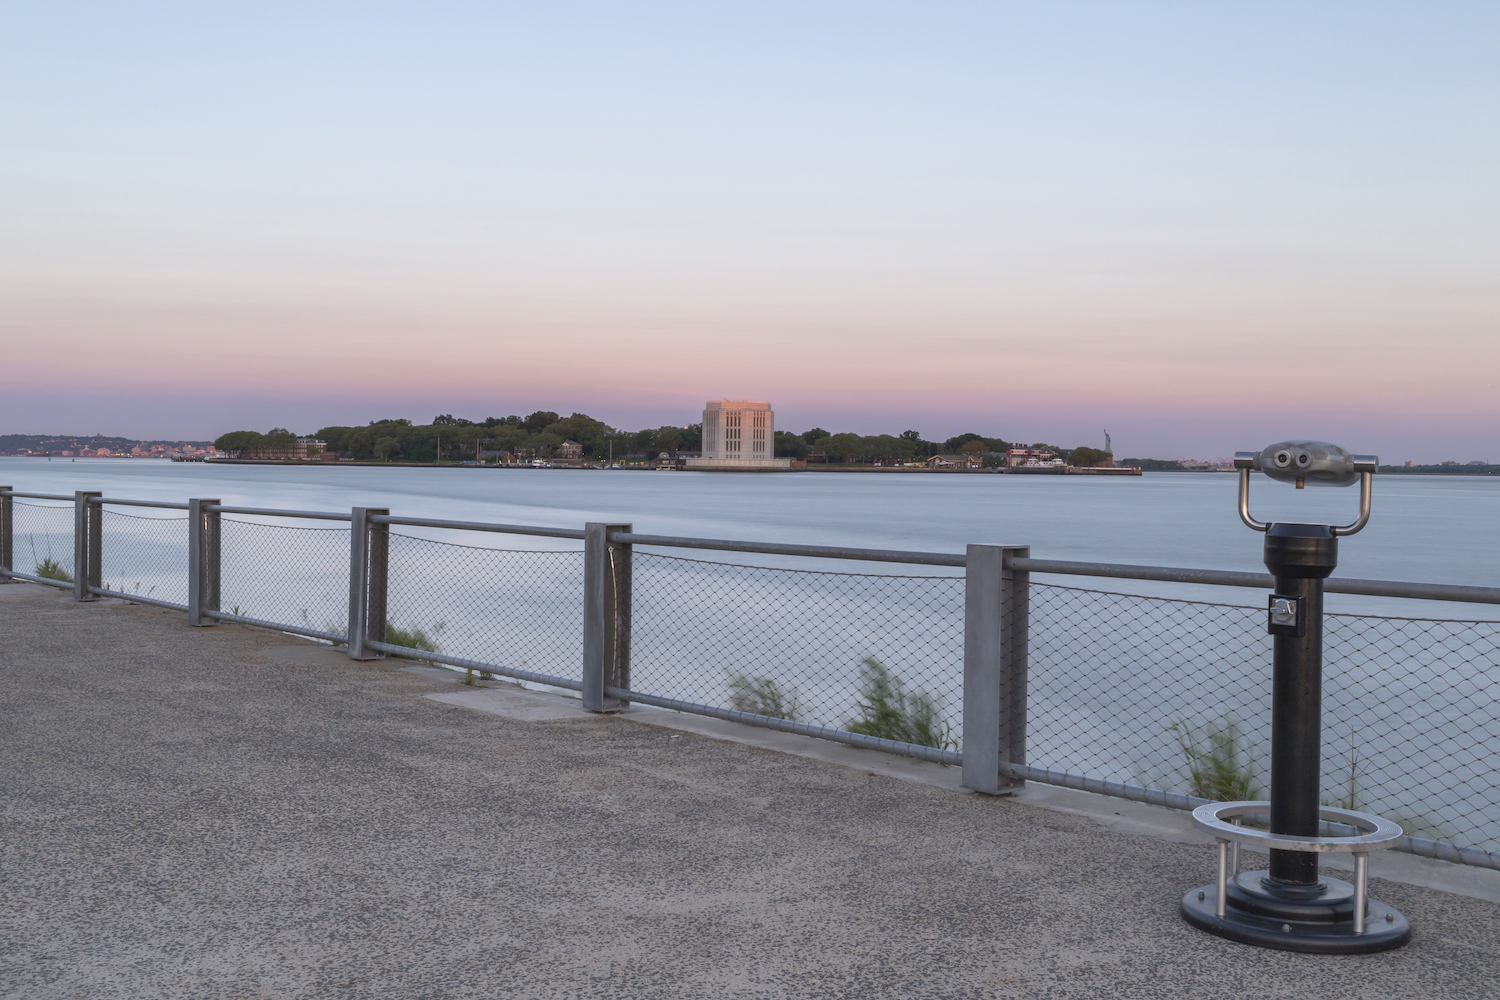 View on Governor island from the pier at sunrise example image 1